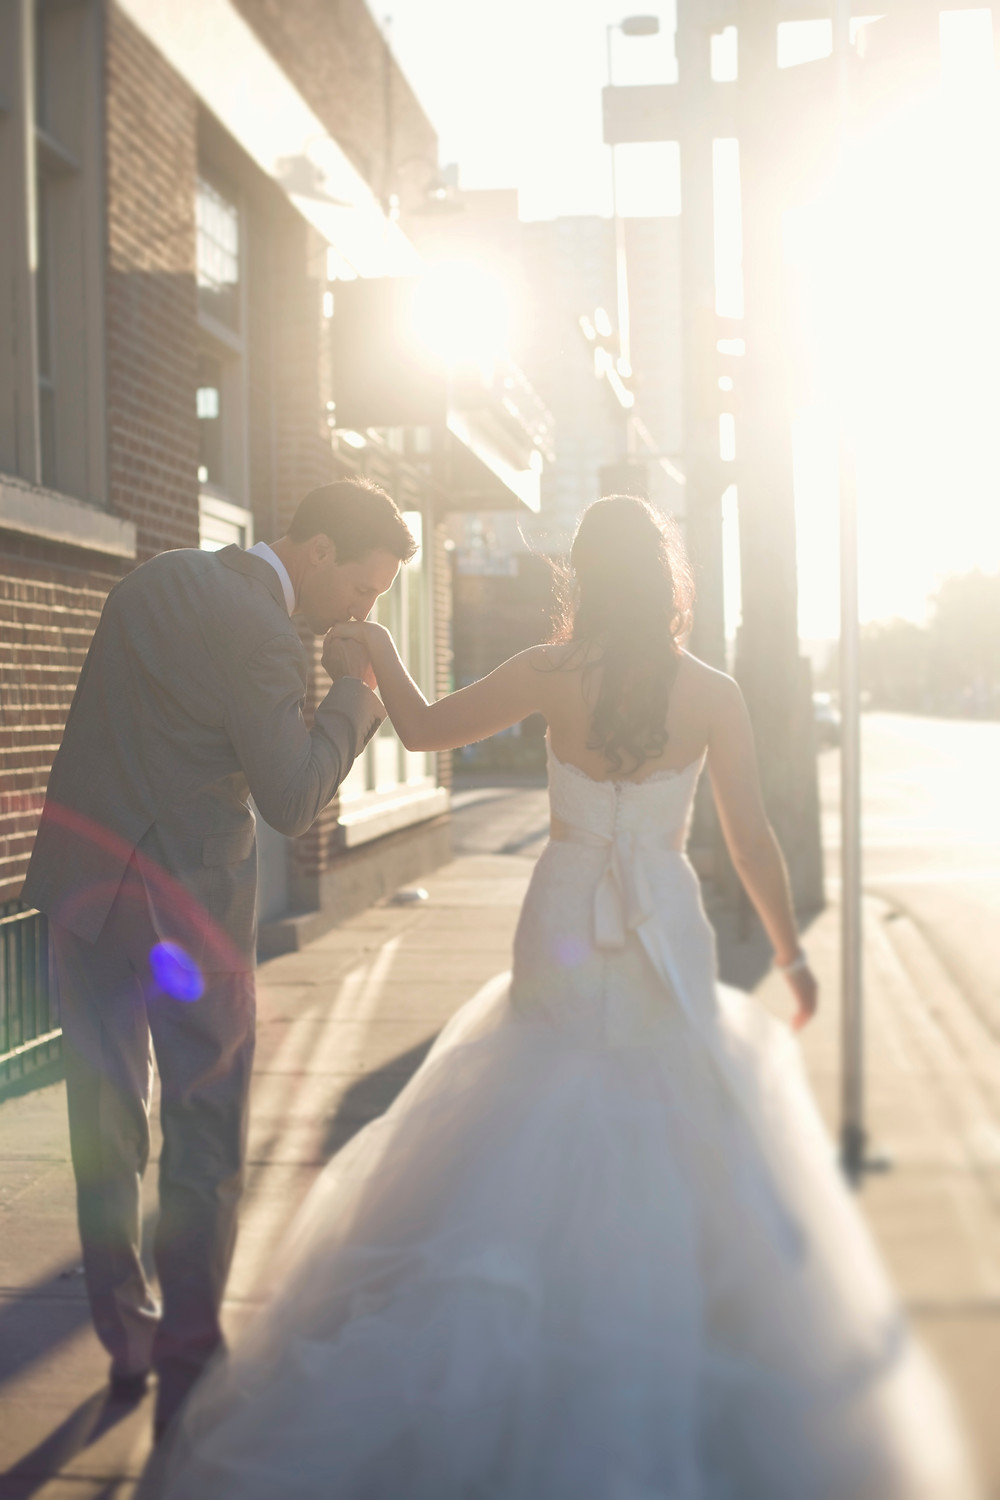 A bride and groom walk off into the sunset on their wedding day hand in hand.